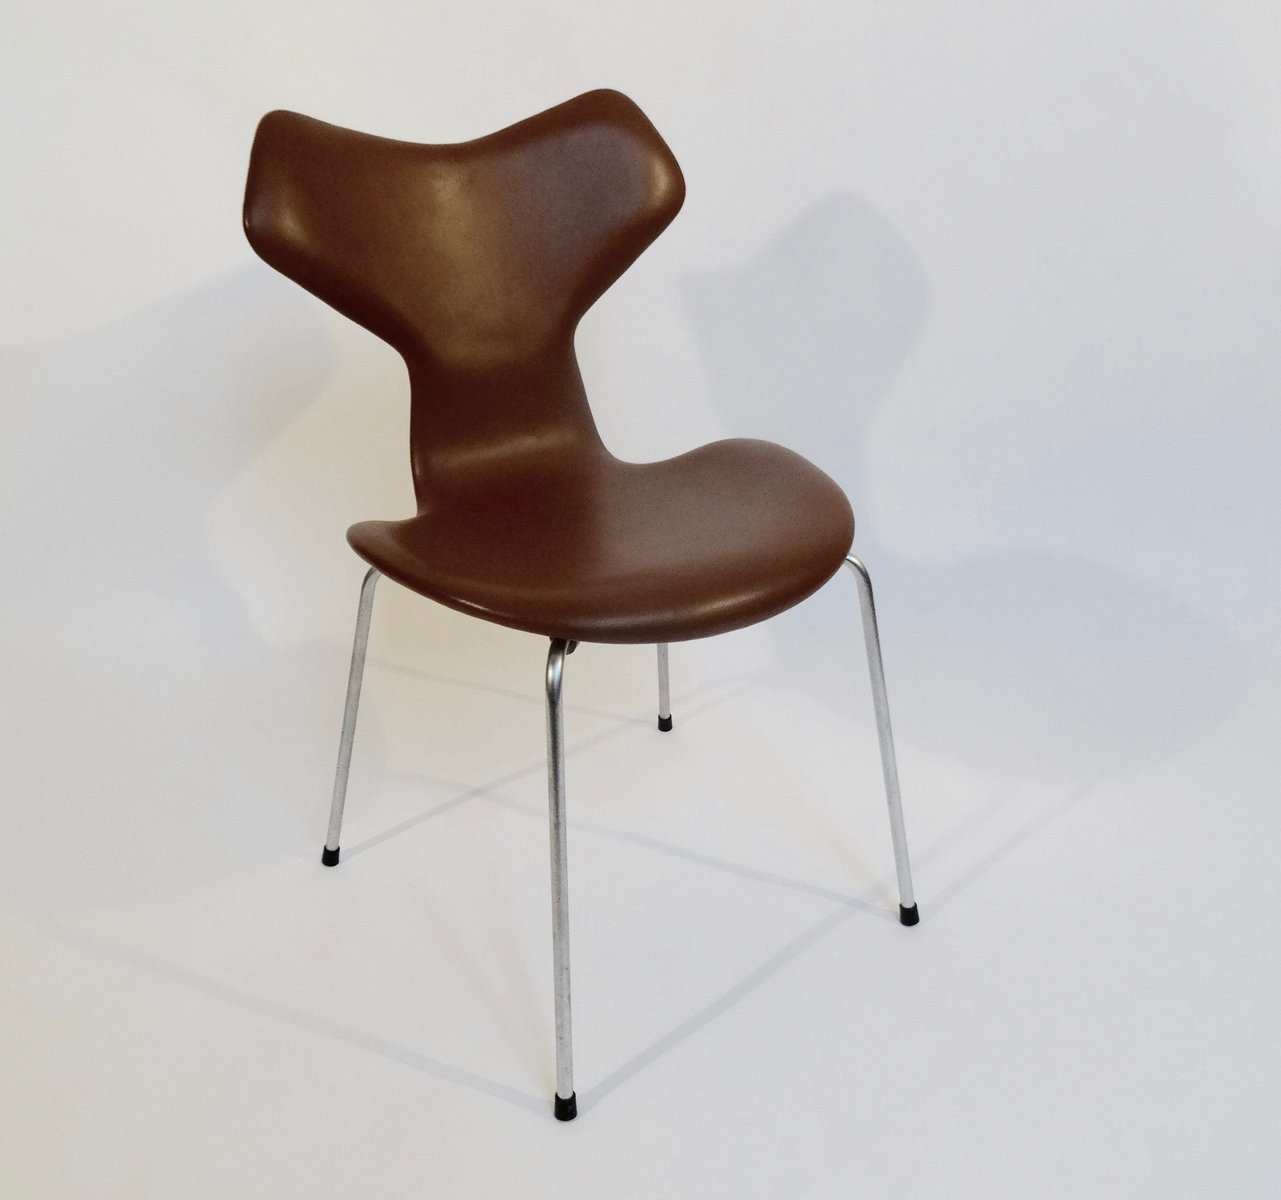 Grand Prix Chair by Arne Jacobsen for Fritz Hansen 1964 for sale